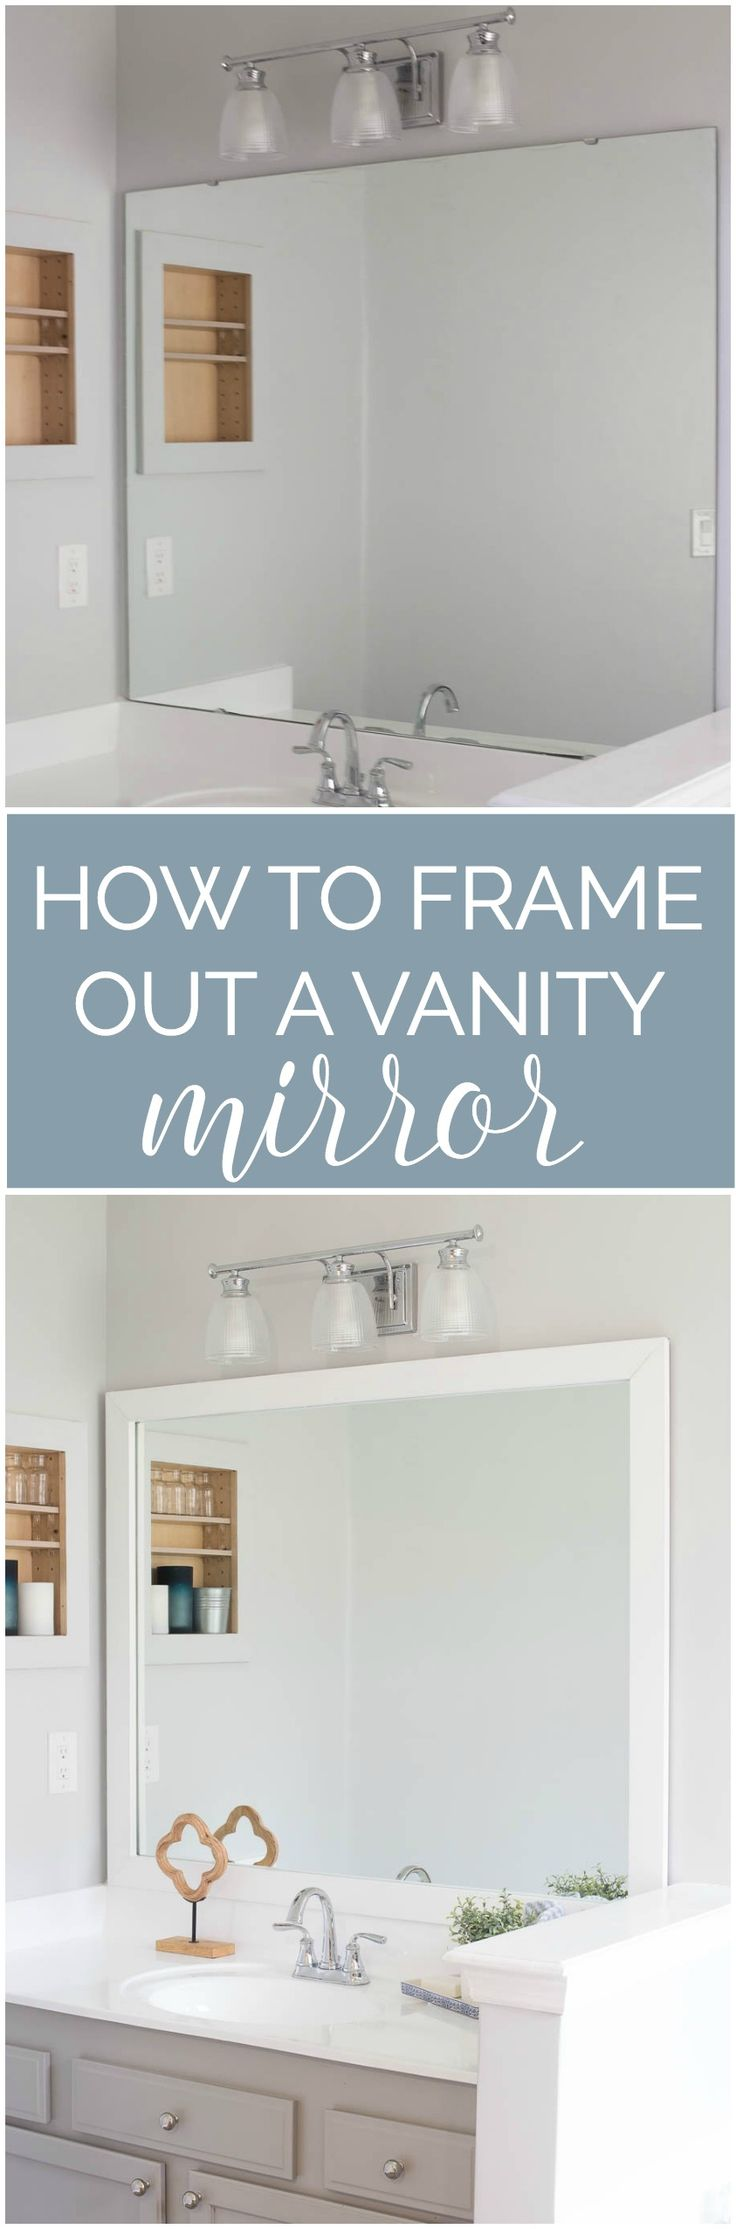 Stores that sell bathroom vanities - How To Frame A Bathroom Mirror Easy Diy Project